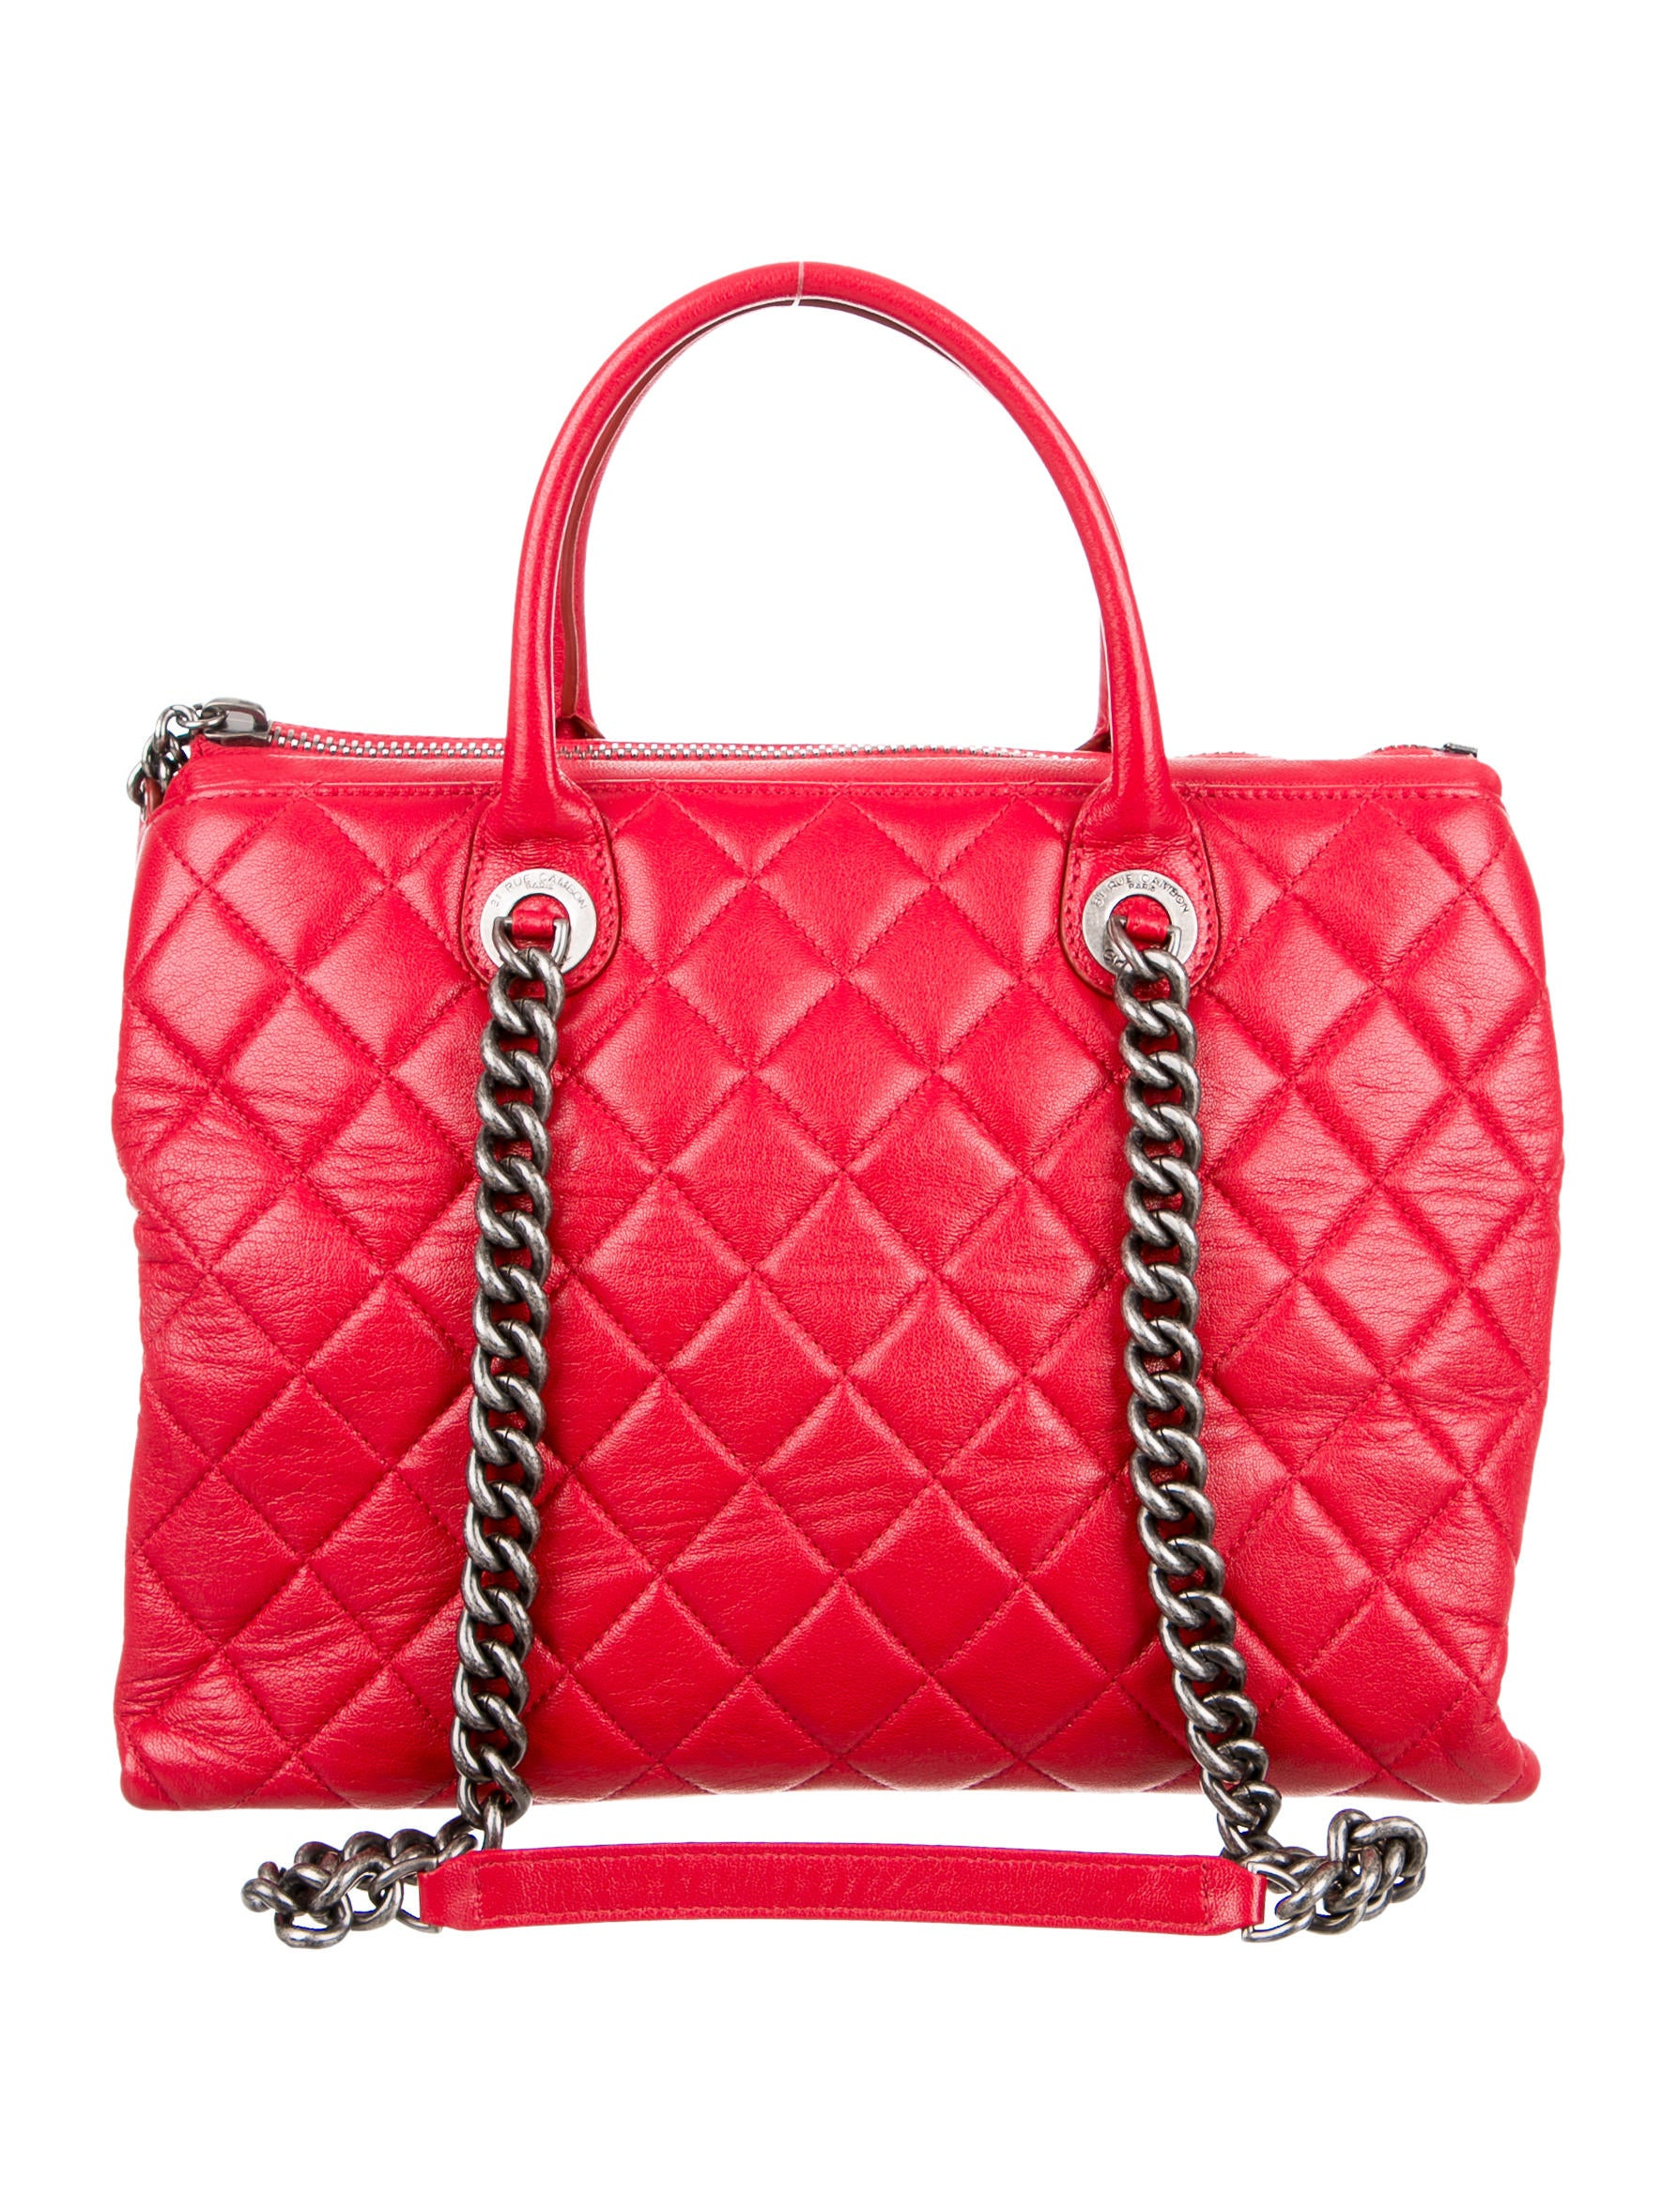 Chanel Quilted Zip Shopping Tote Handbags CHA157284  : CHA1572841enlarged from www.therealreal.com size 1786 x 2356 jpeg 536kB